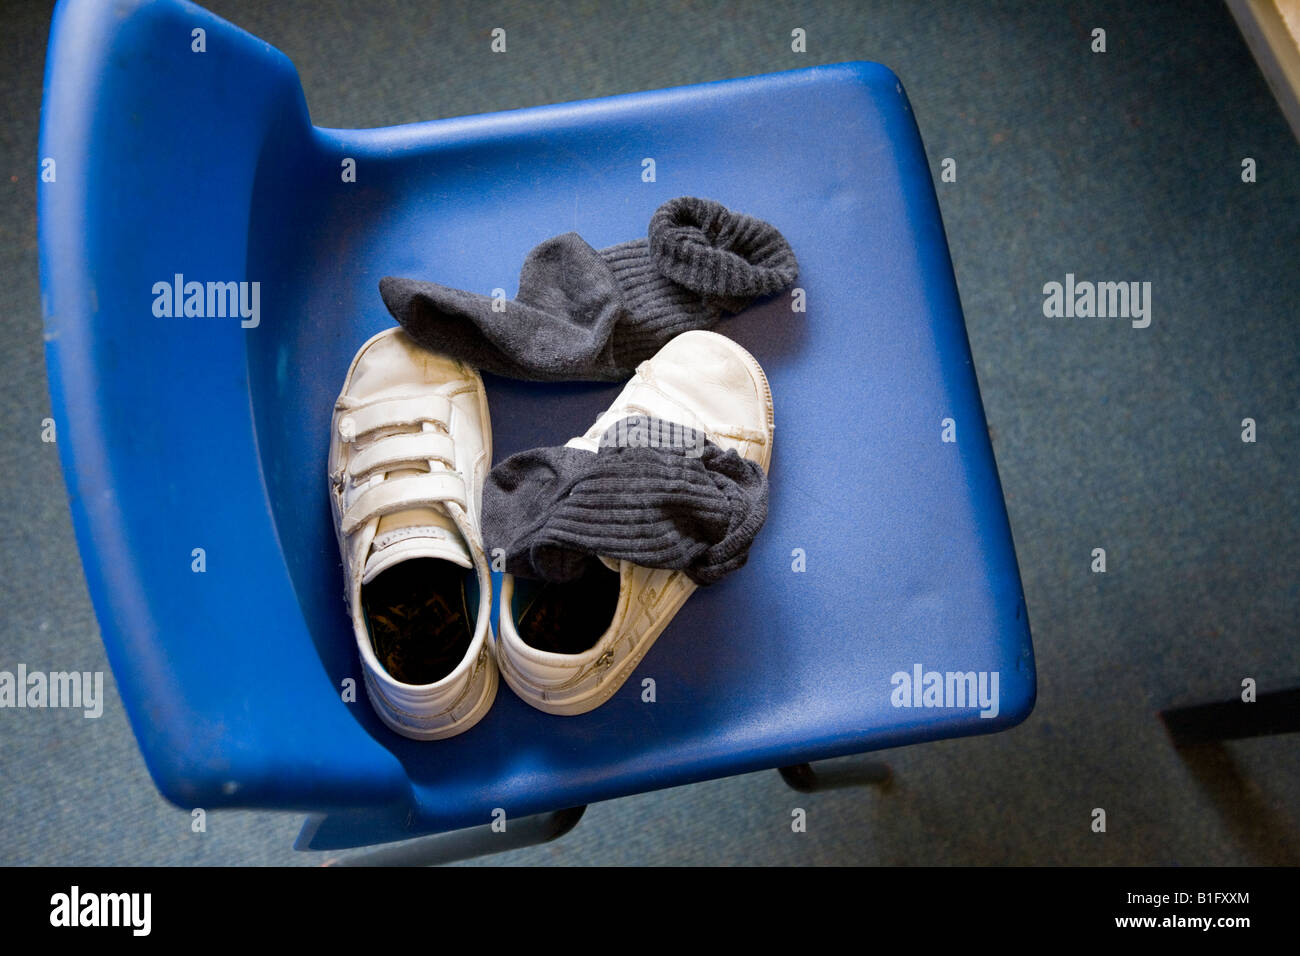 Childu0027s Socks And Shoes Abandoned On A Blue School Chair